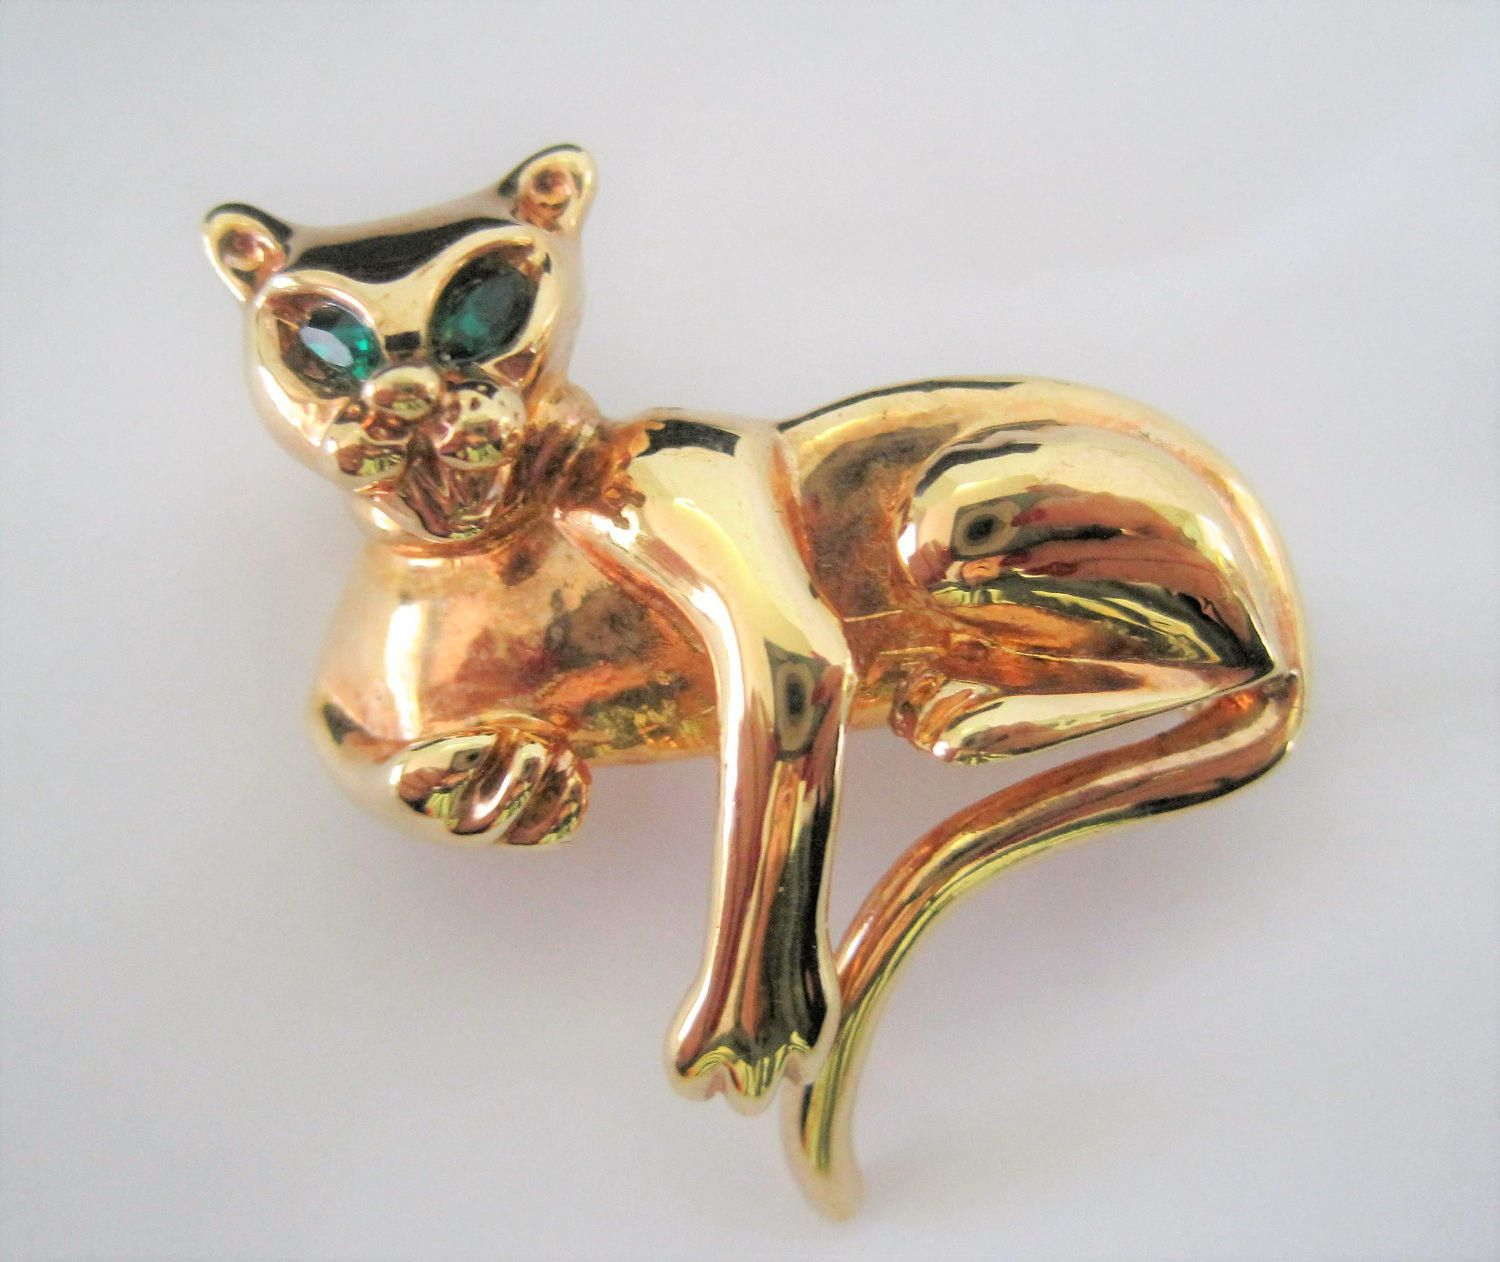 Kitty Cat Brooch - Gold Tone Metal - Green Rhinestone Eyes - Perfect Lapel Pin  VintagObsessions off